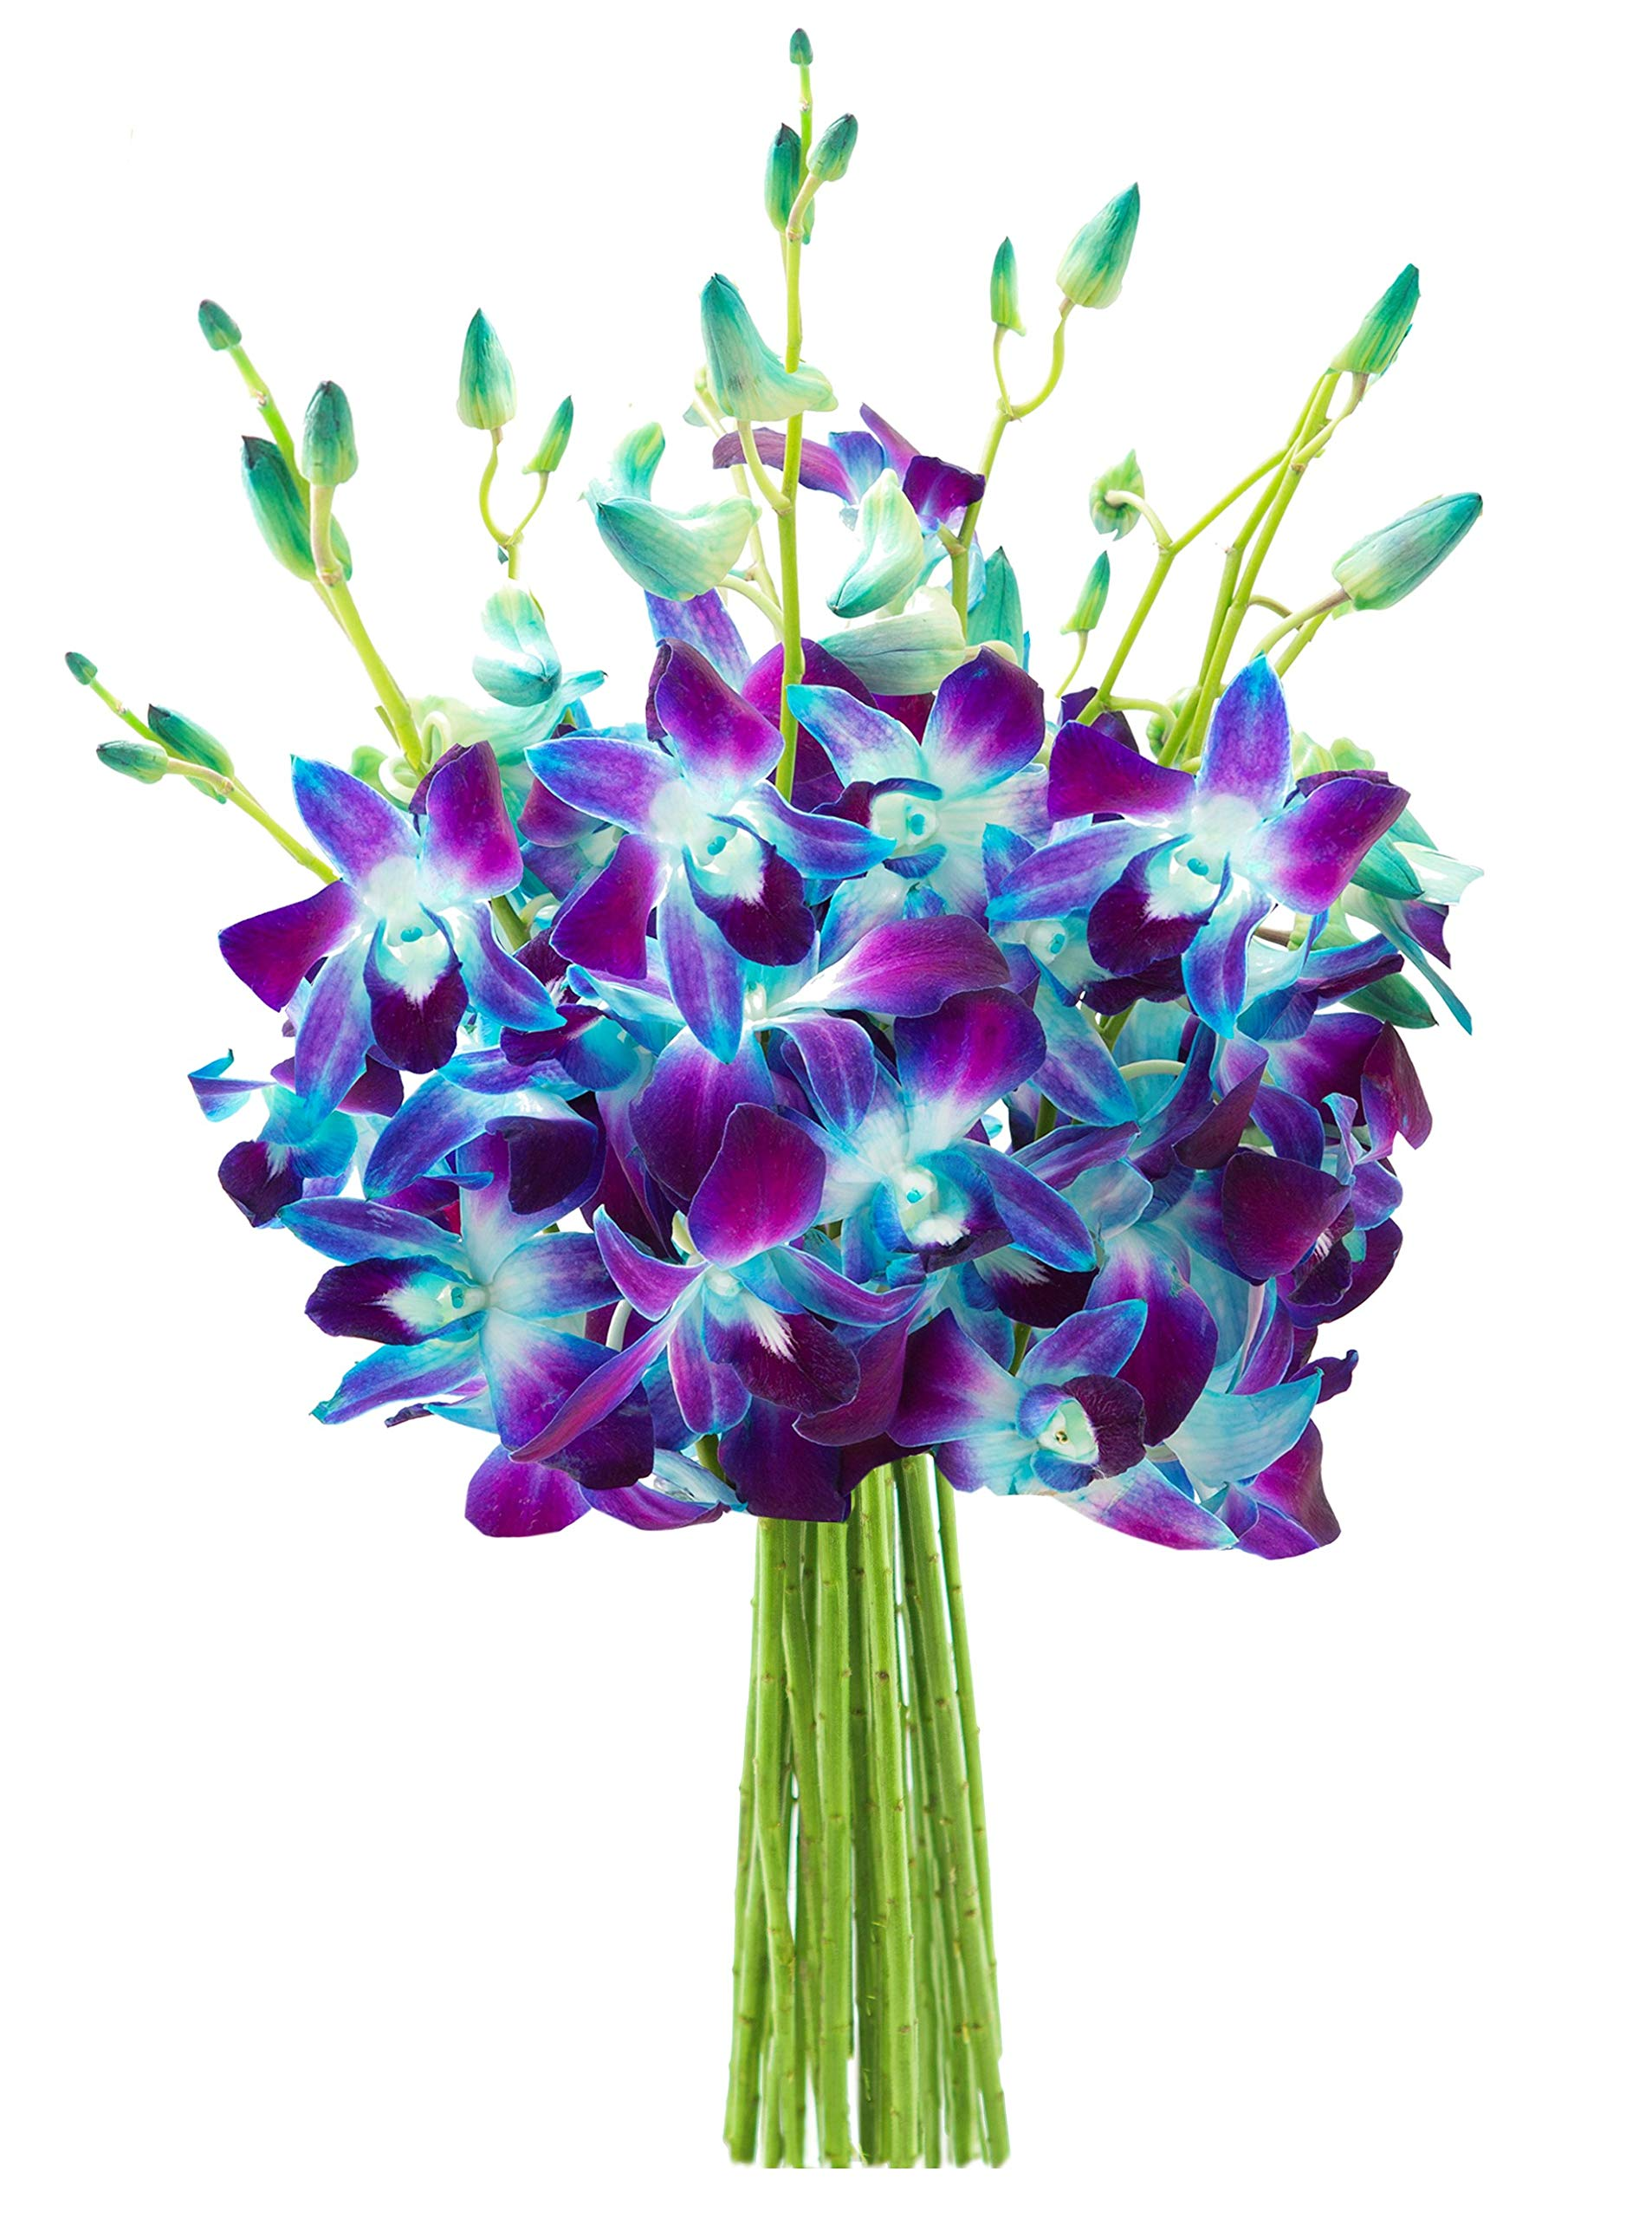 KaBloom Exotic Sapphire Orchid Bouquet of Blue Orchids from Thailand by KaBloom